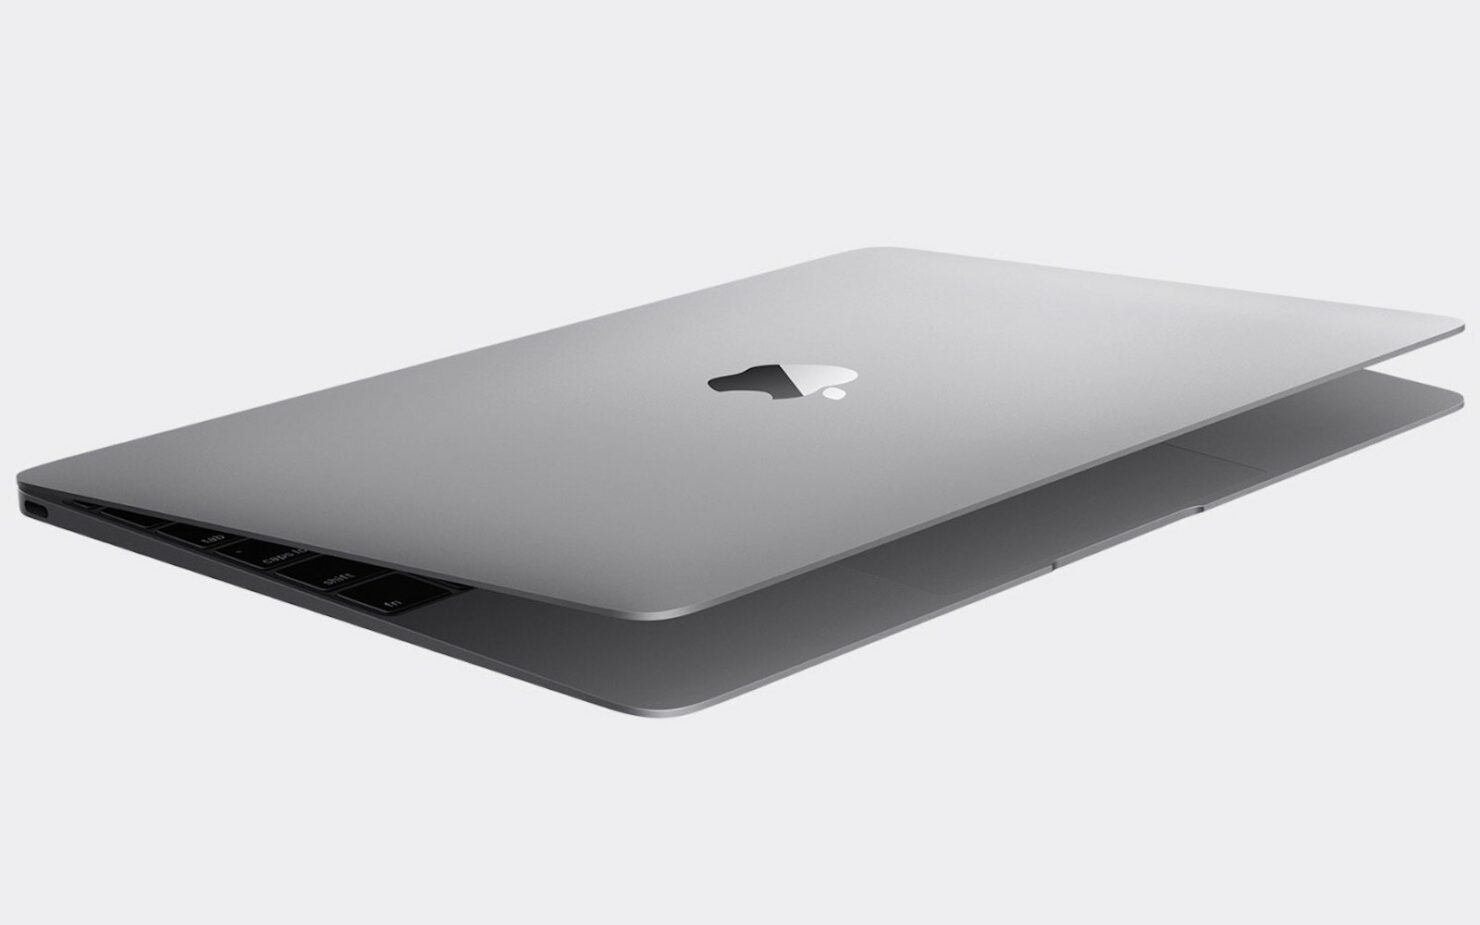 Lawsuit filed against Apple over a defected MacBook that caused burn marks